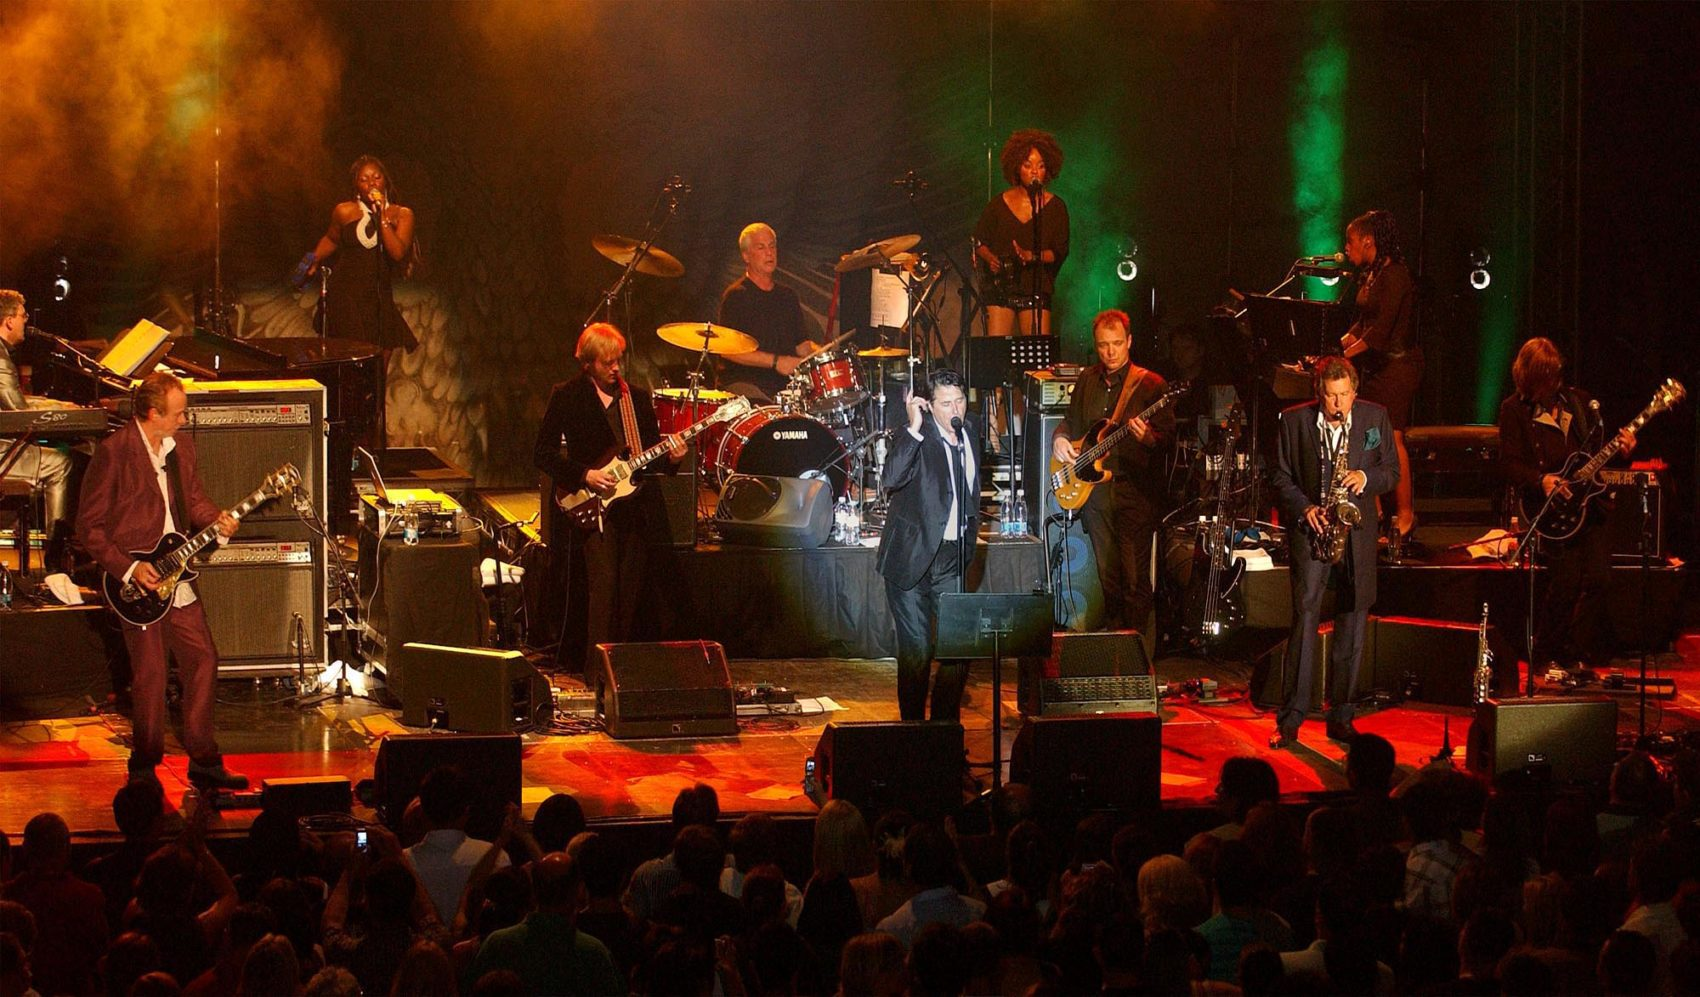 Brian Ferry, center, performs during a concert of the British pop band Roxy Music in Macedonia's southwestern town of Ohrid on July 14, 2006. (Boris Grdanoski/AP)